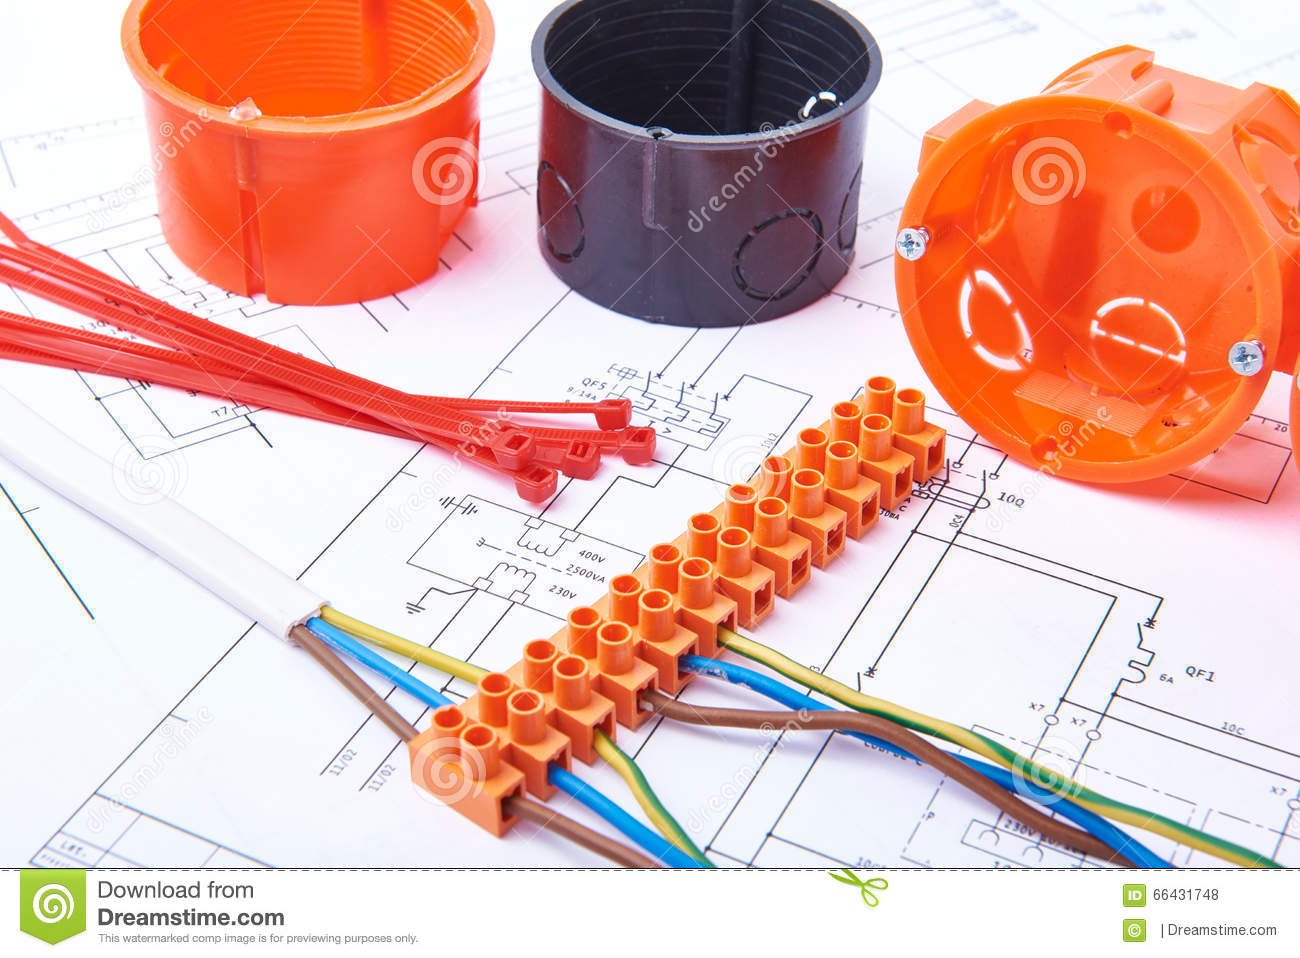 hight resolution of electrical connectors with wires junction box and different materials used for jobs in electricity many tools lying on diagrams